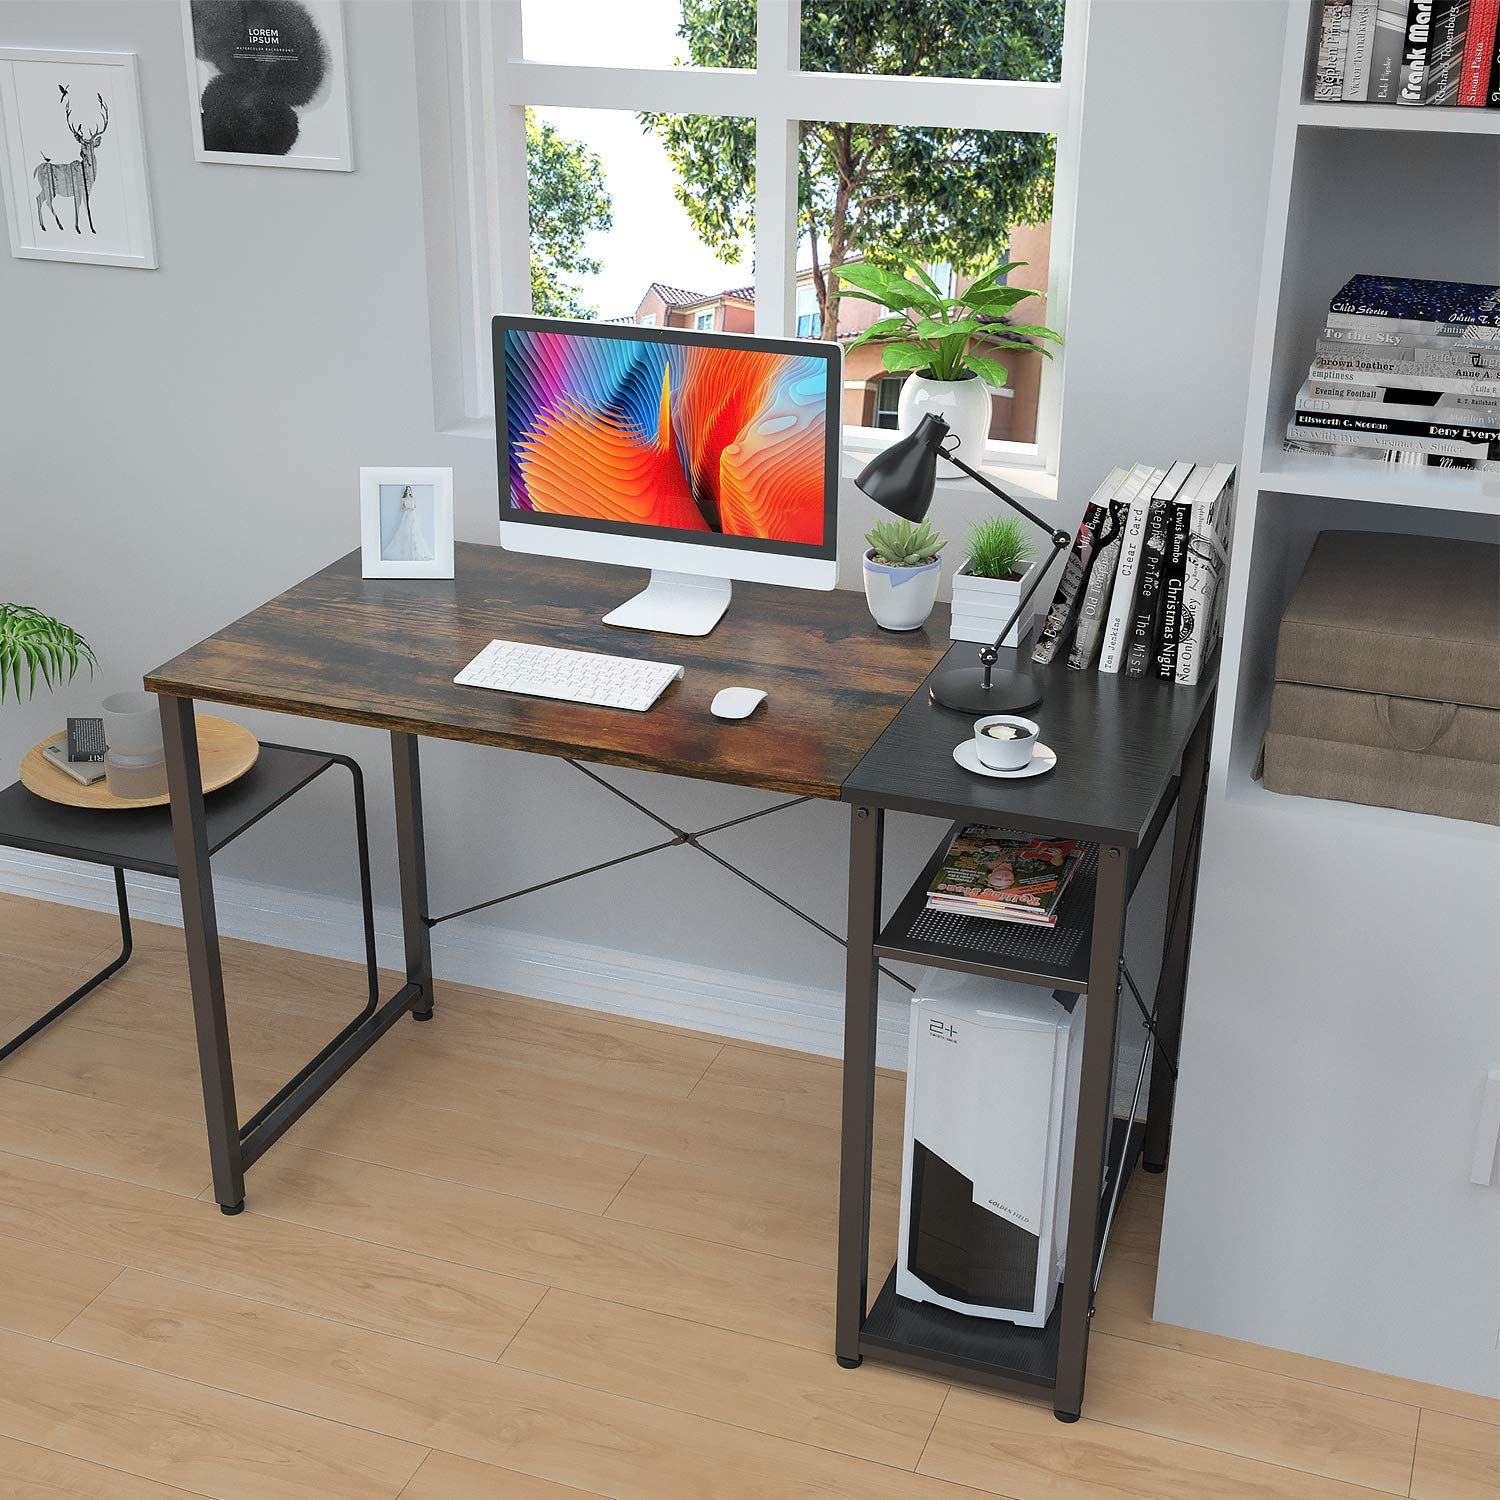 2020 modern home office furniture professional student study writing computer desk with shelf